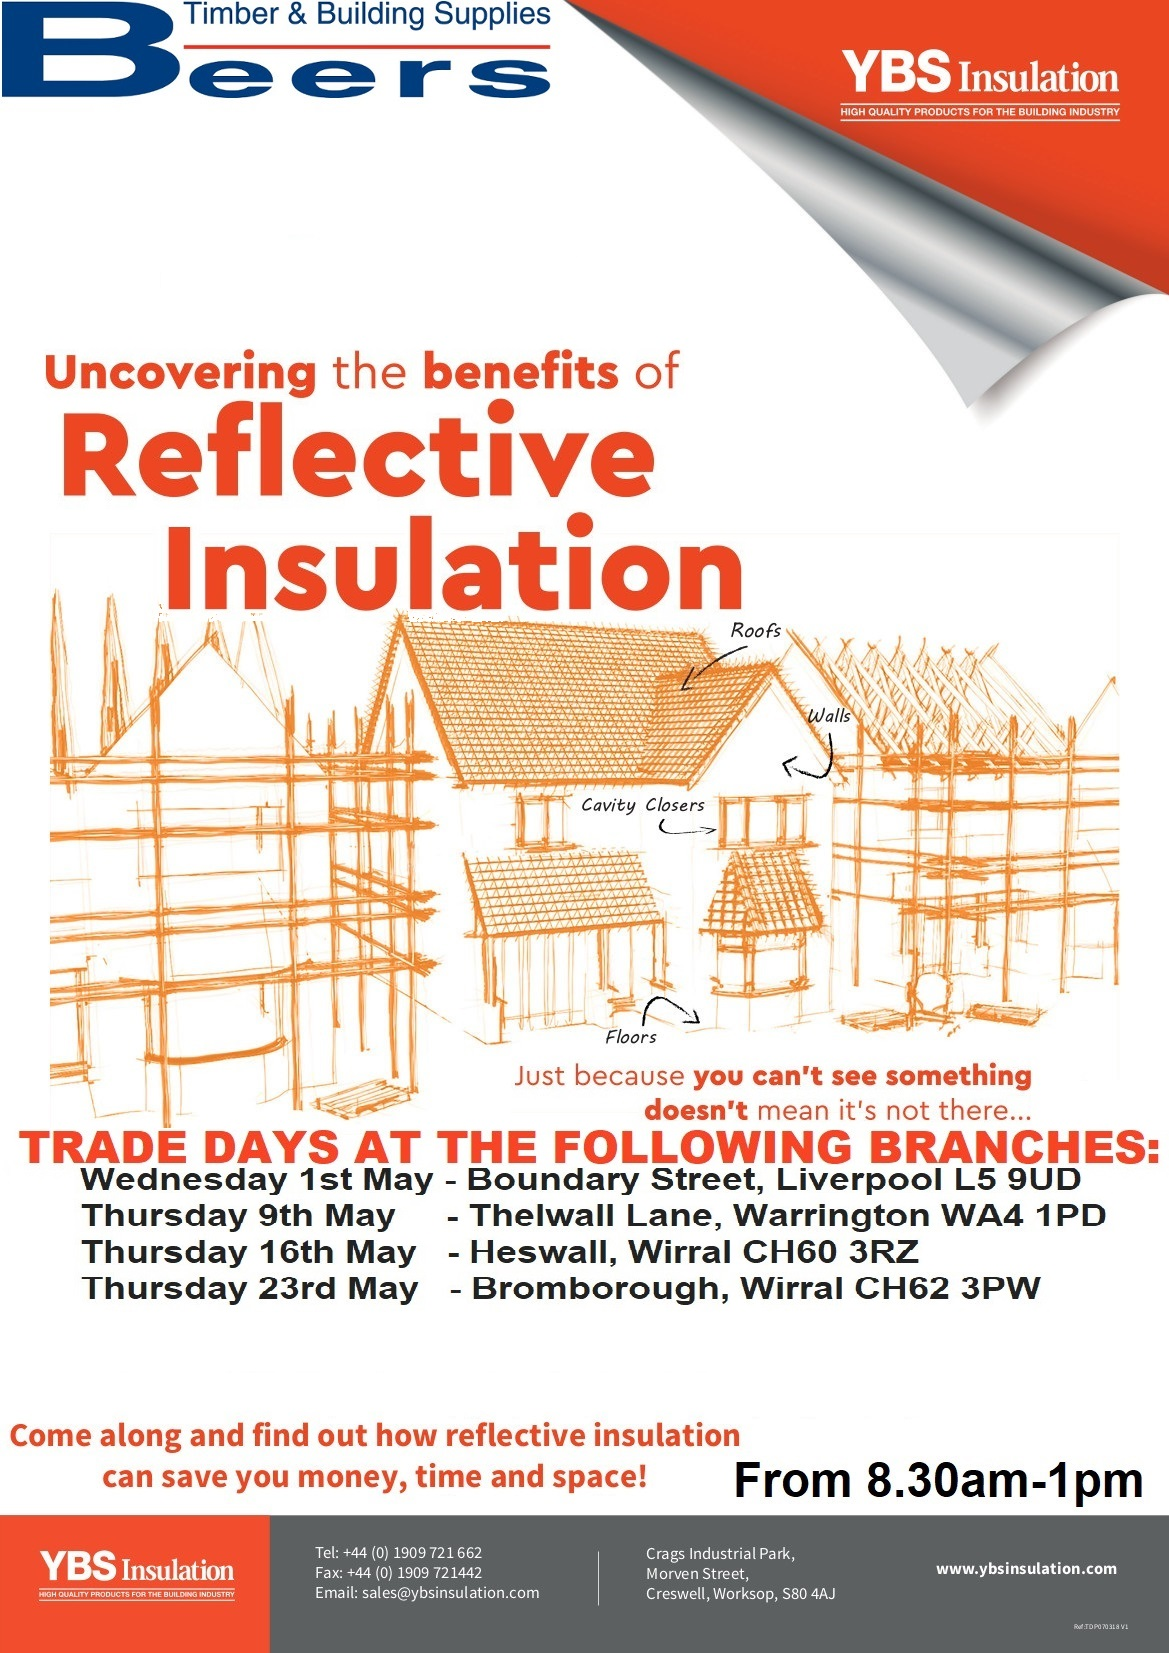 YBS Insulation Trade Mornings are coming to Beers throughout May